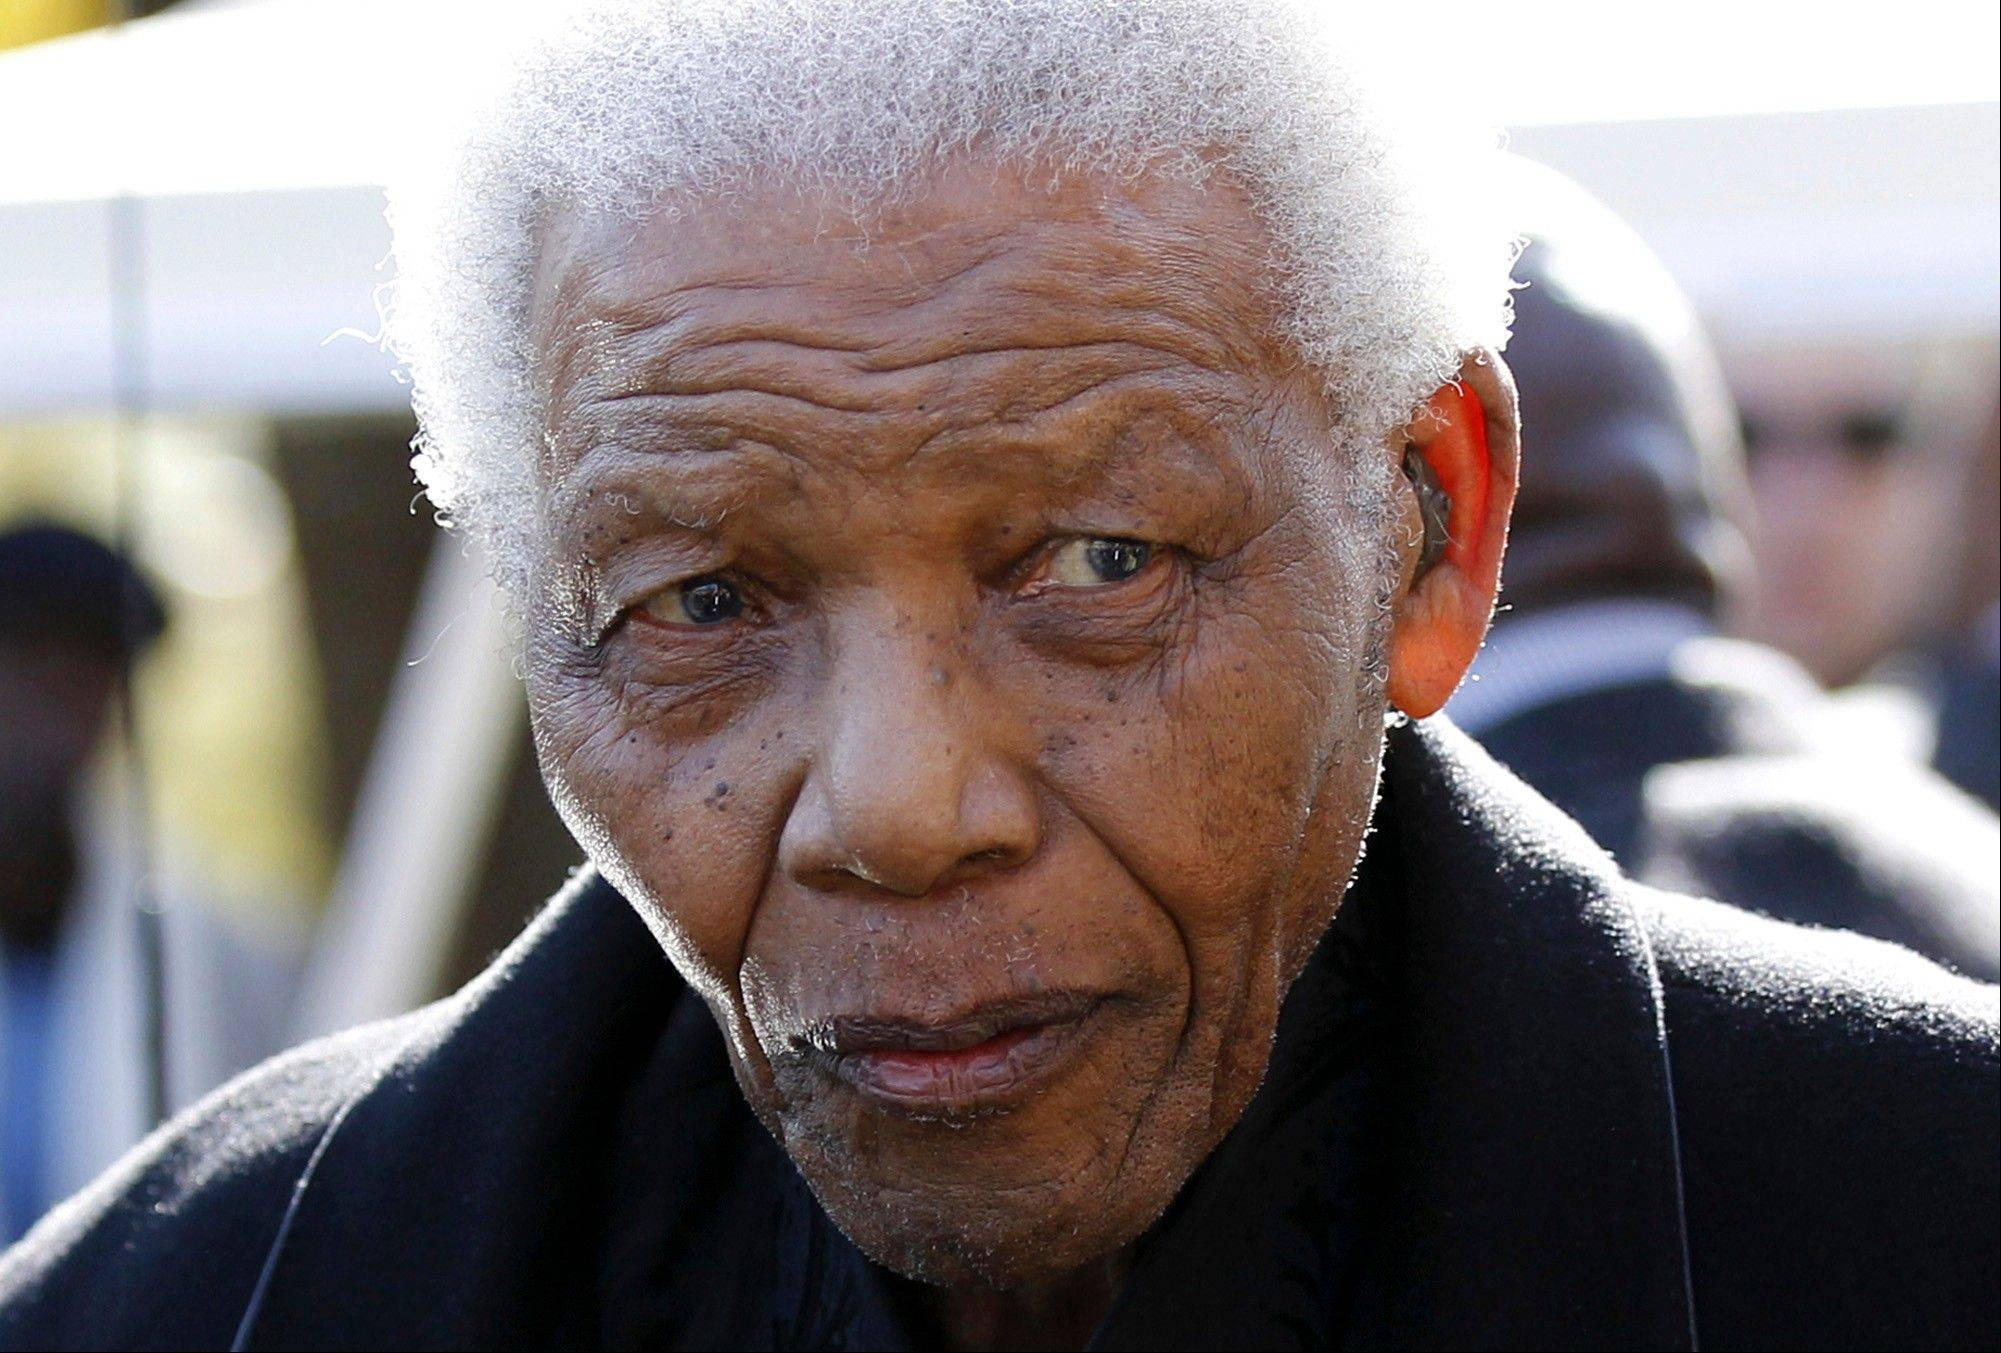 Mandela admitted to hospital 'for tests'